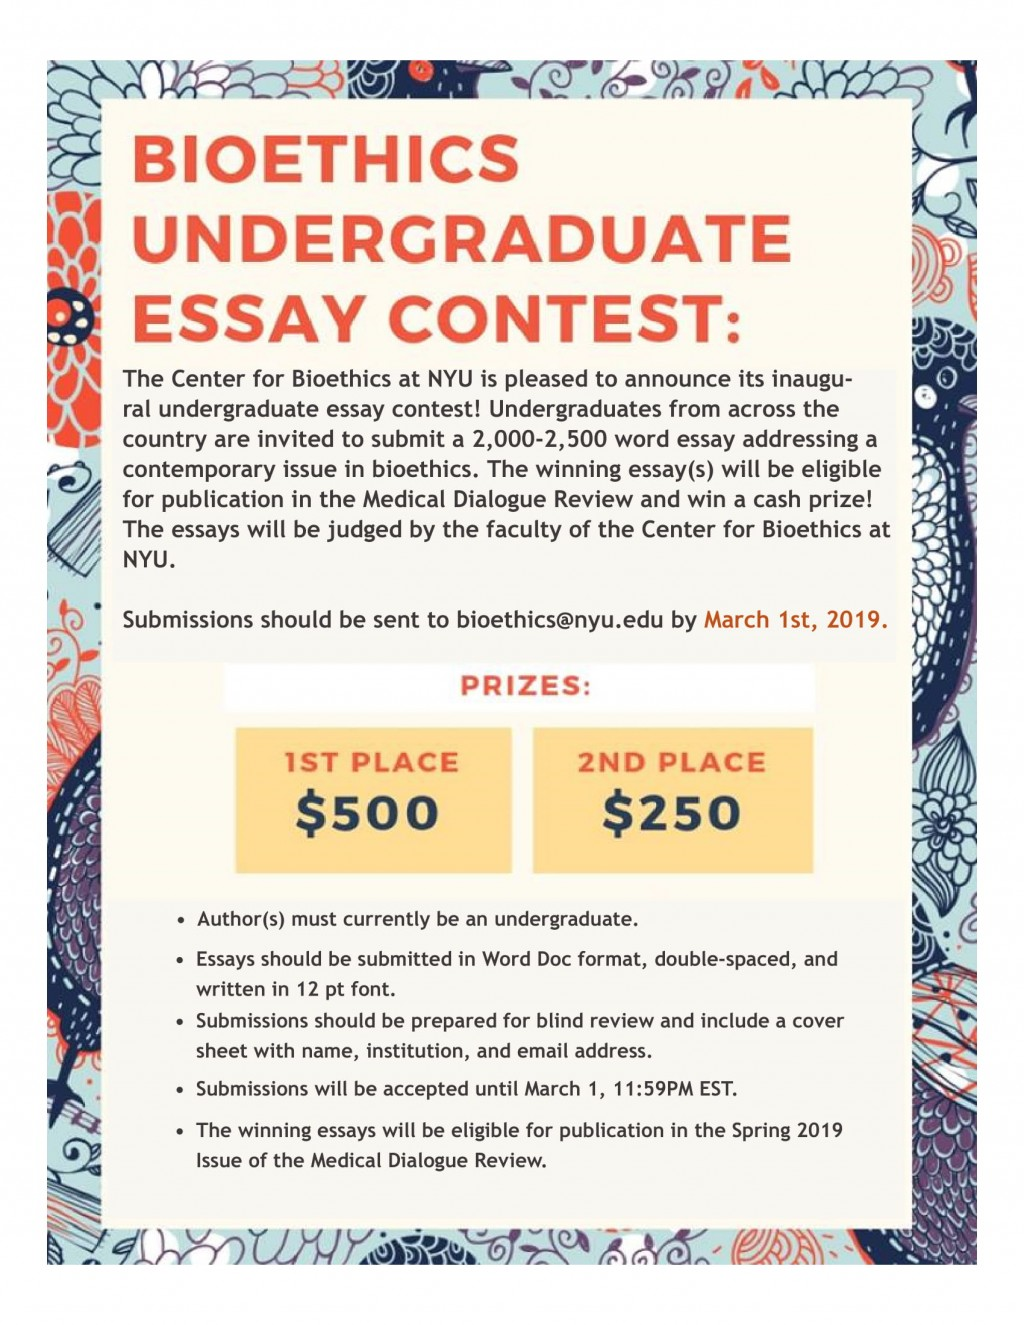 024 Essay Example Submissions Bioethics Contest Flier Impressive Buzzfeed Personal Ireland 2018 Large